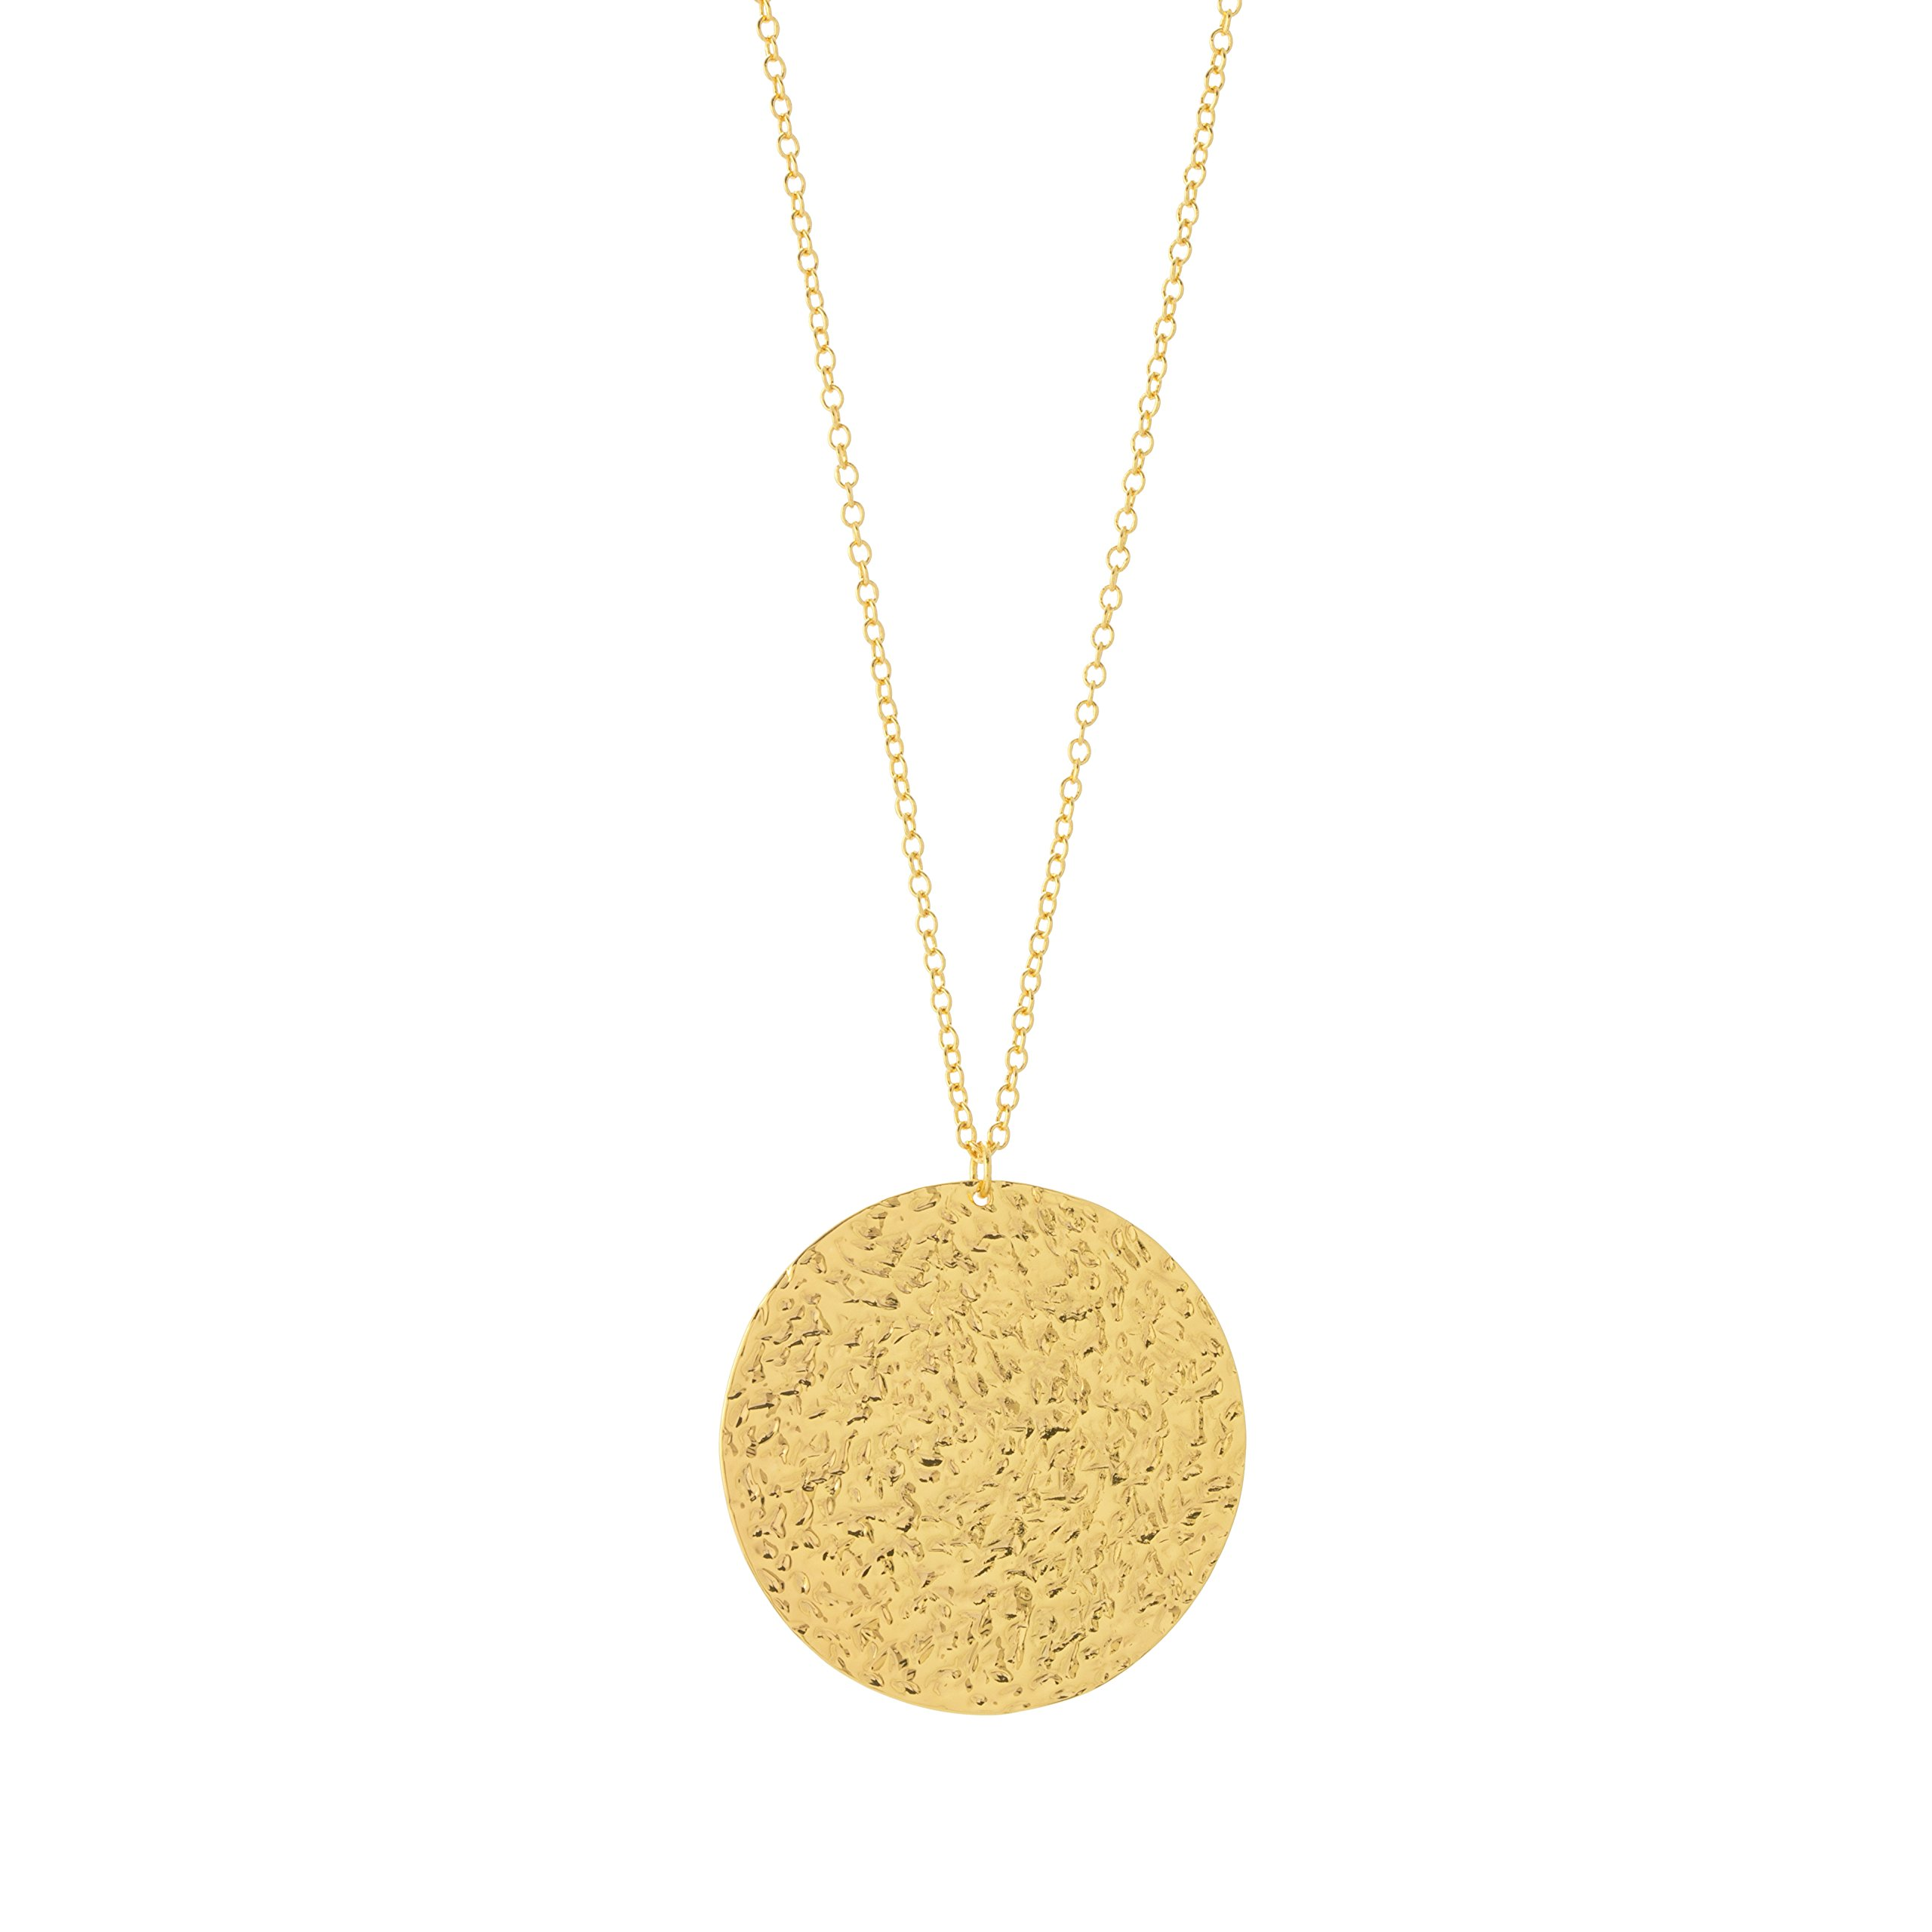 Gorjana Faye Gold Pendant Necklace